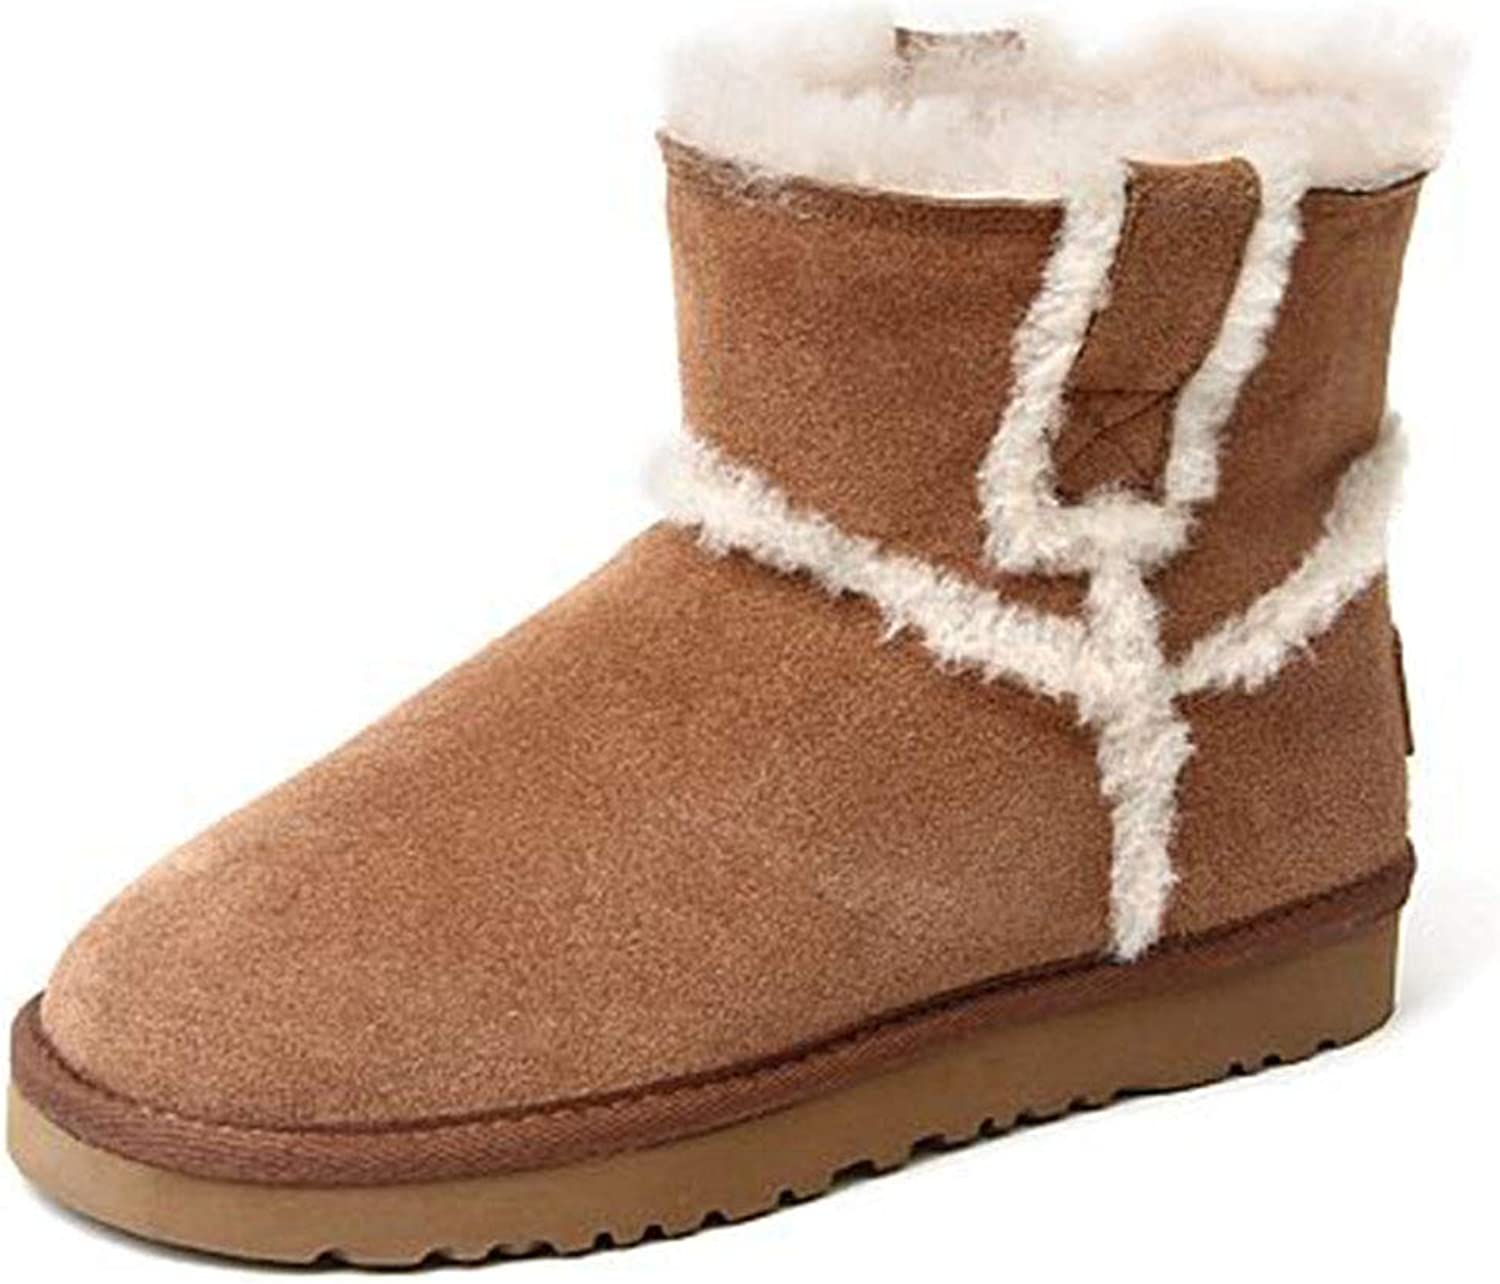 Warm Snow Boots Women's shoes Warm Short Velvet Sneakers Booties Flat Snow Boots Casual Boots Casual Walking shoes shoes & Handbags (color   Brown, Size   36)